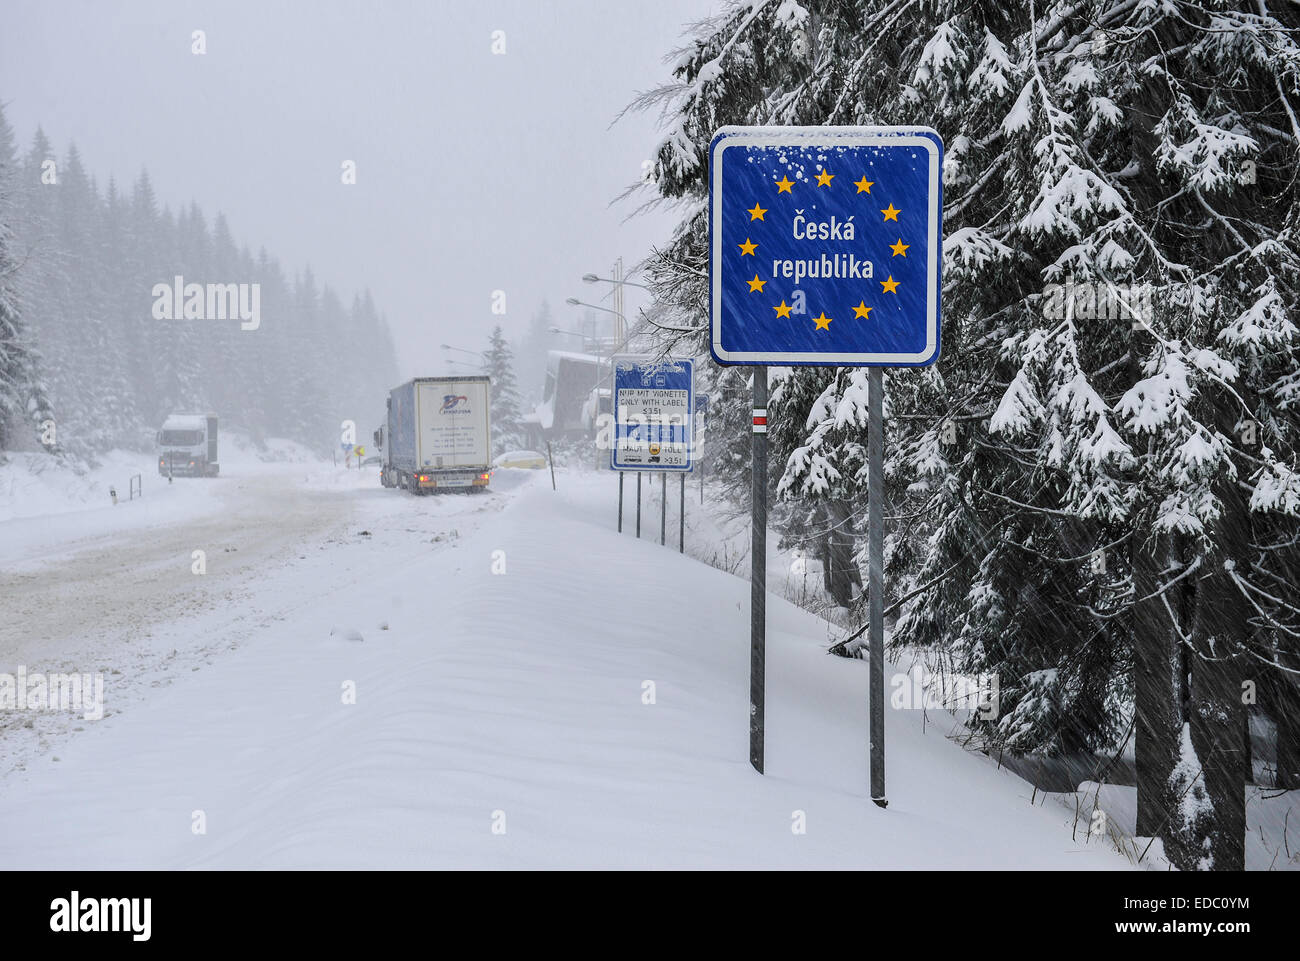 border crossing Harrachov - Jakuszyce, road, snow, camion, lorry - Stock Image